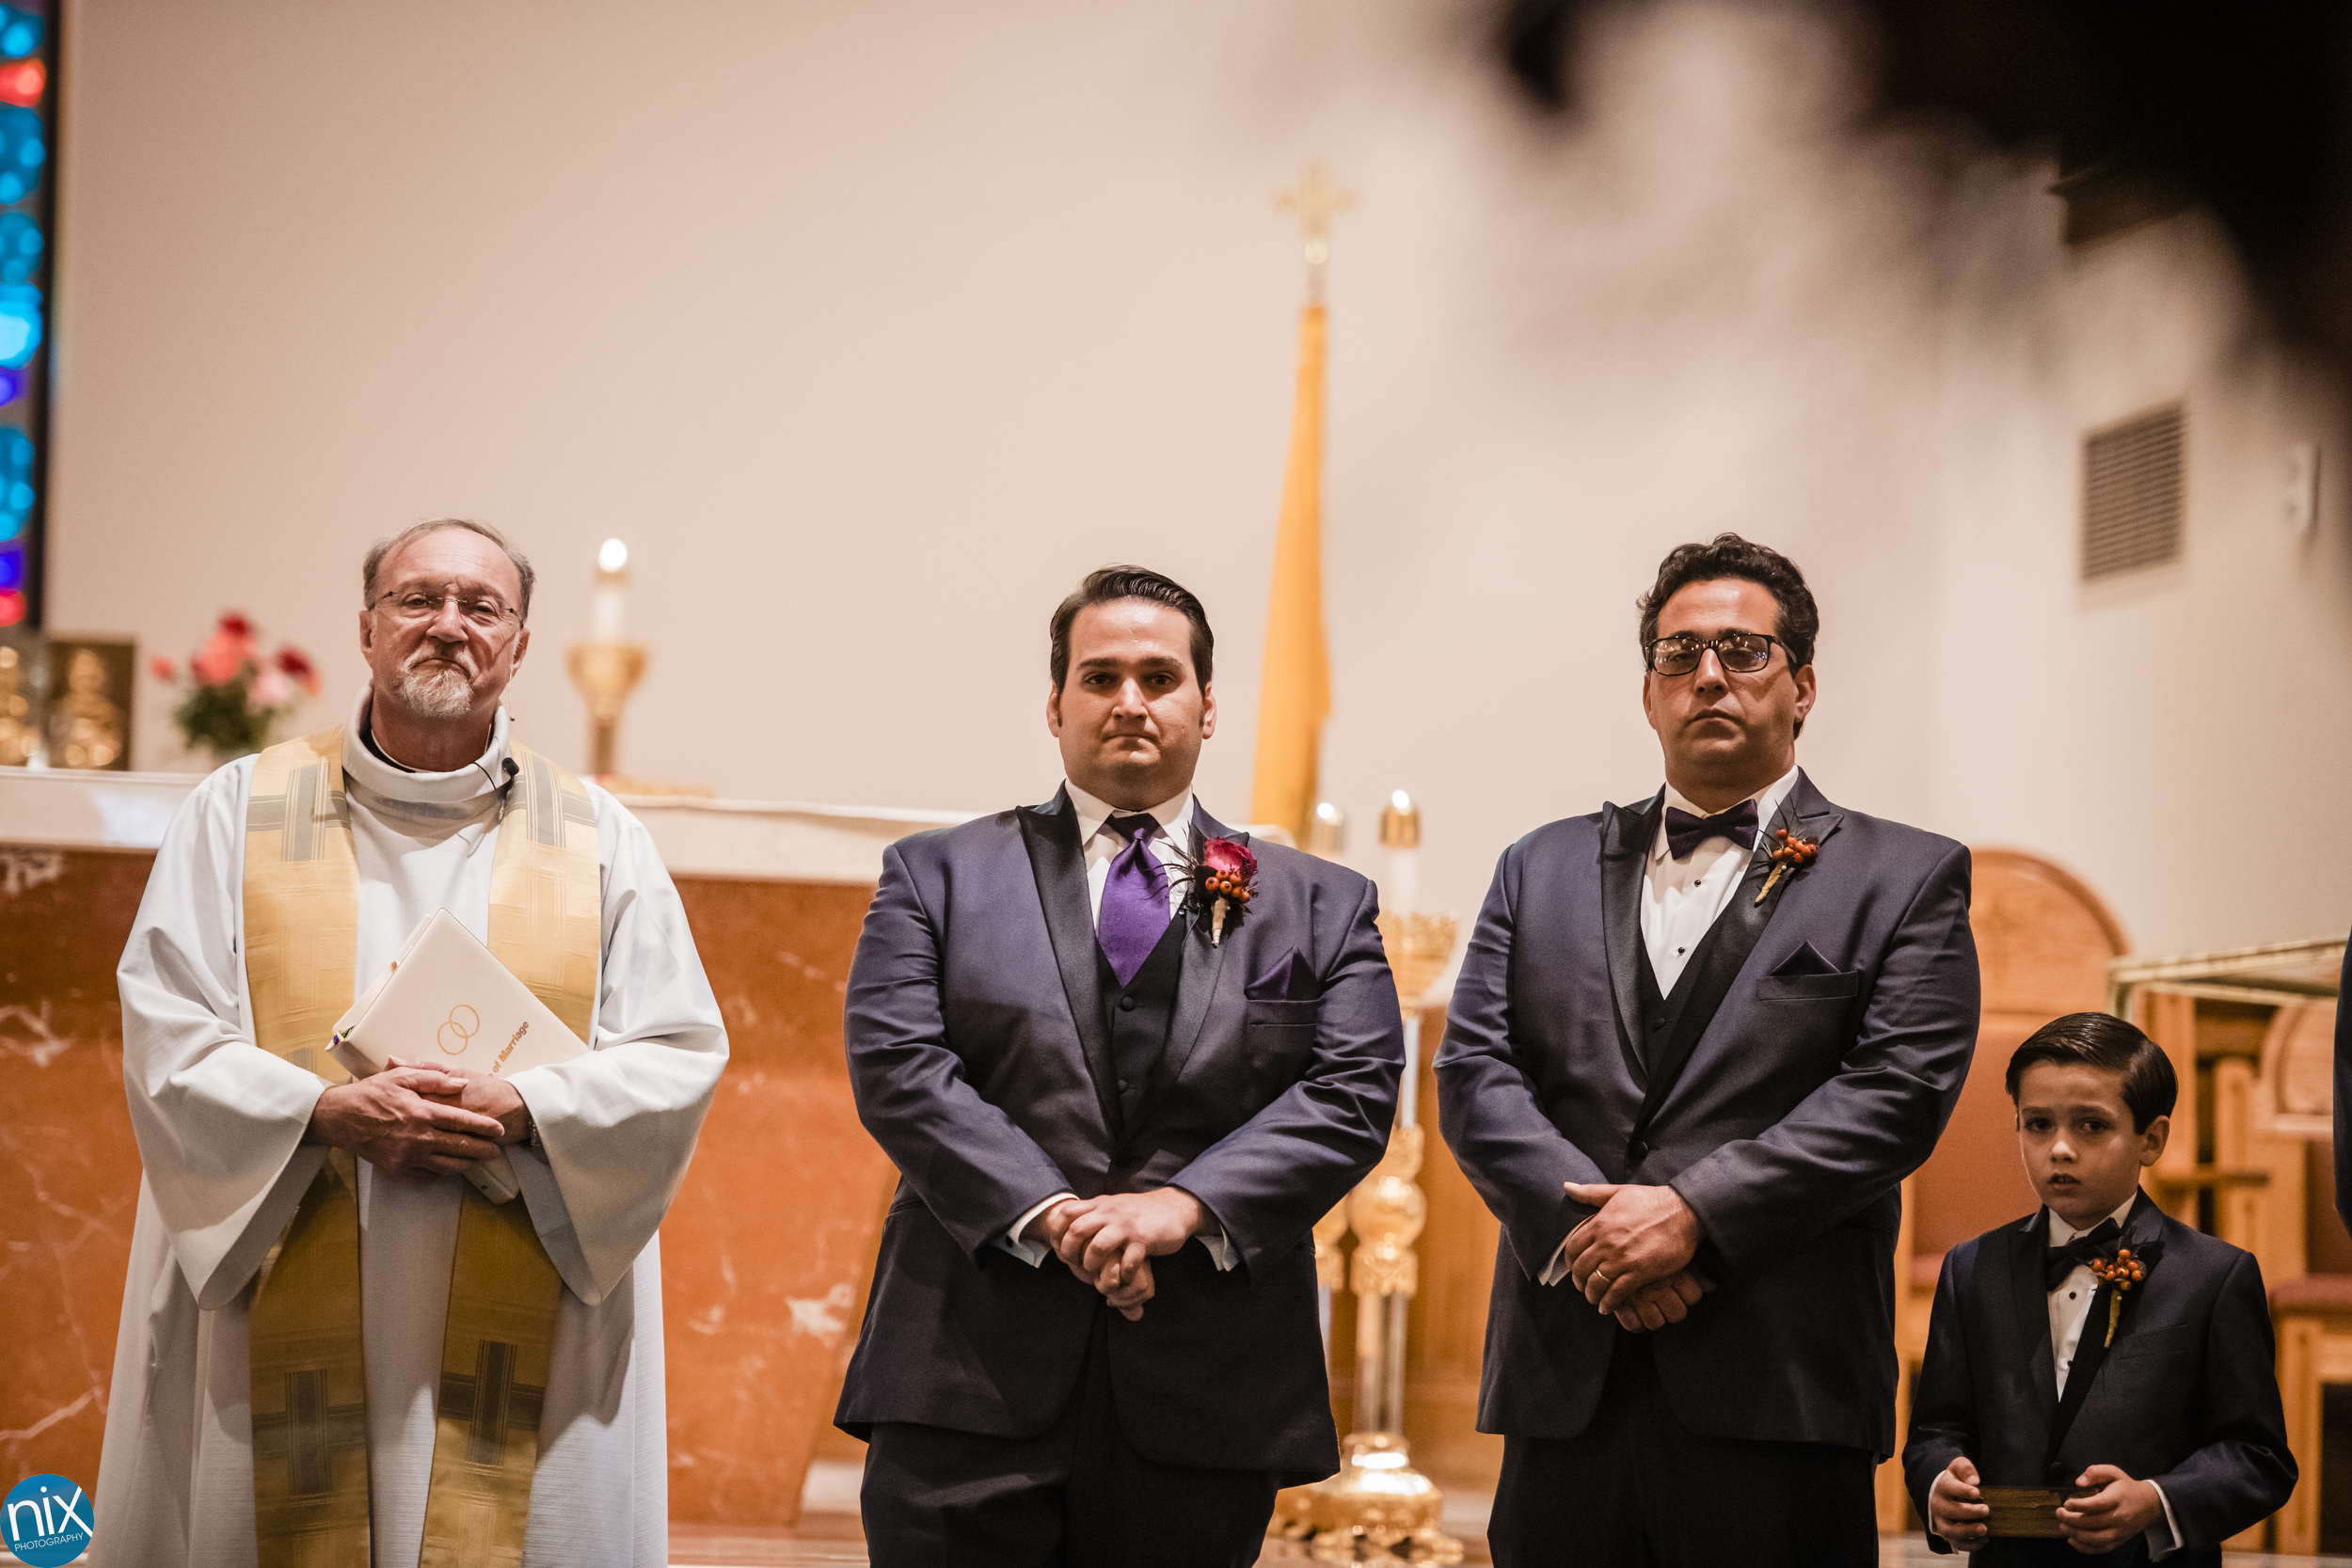 groom watches bride during wedding ceremony at St Philip Neri Catholic Church.jpg